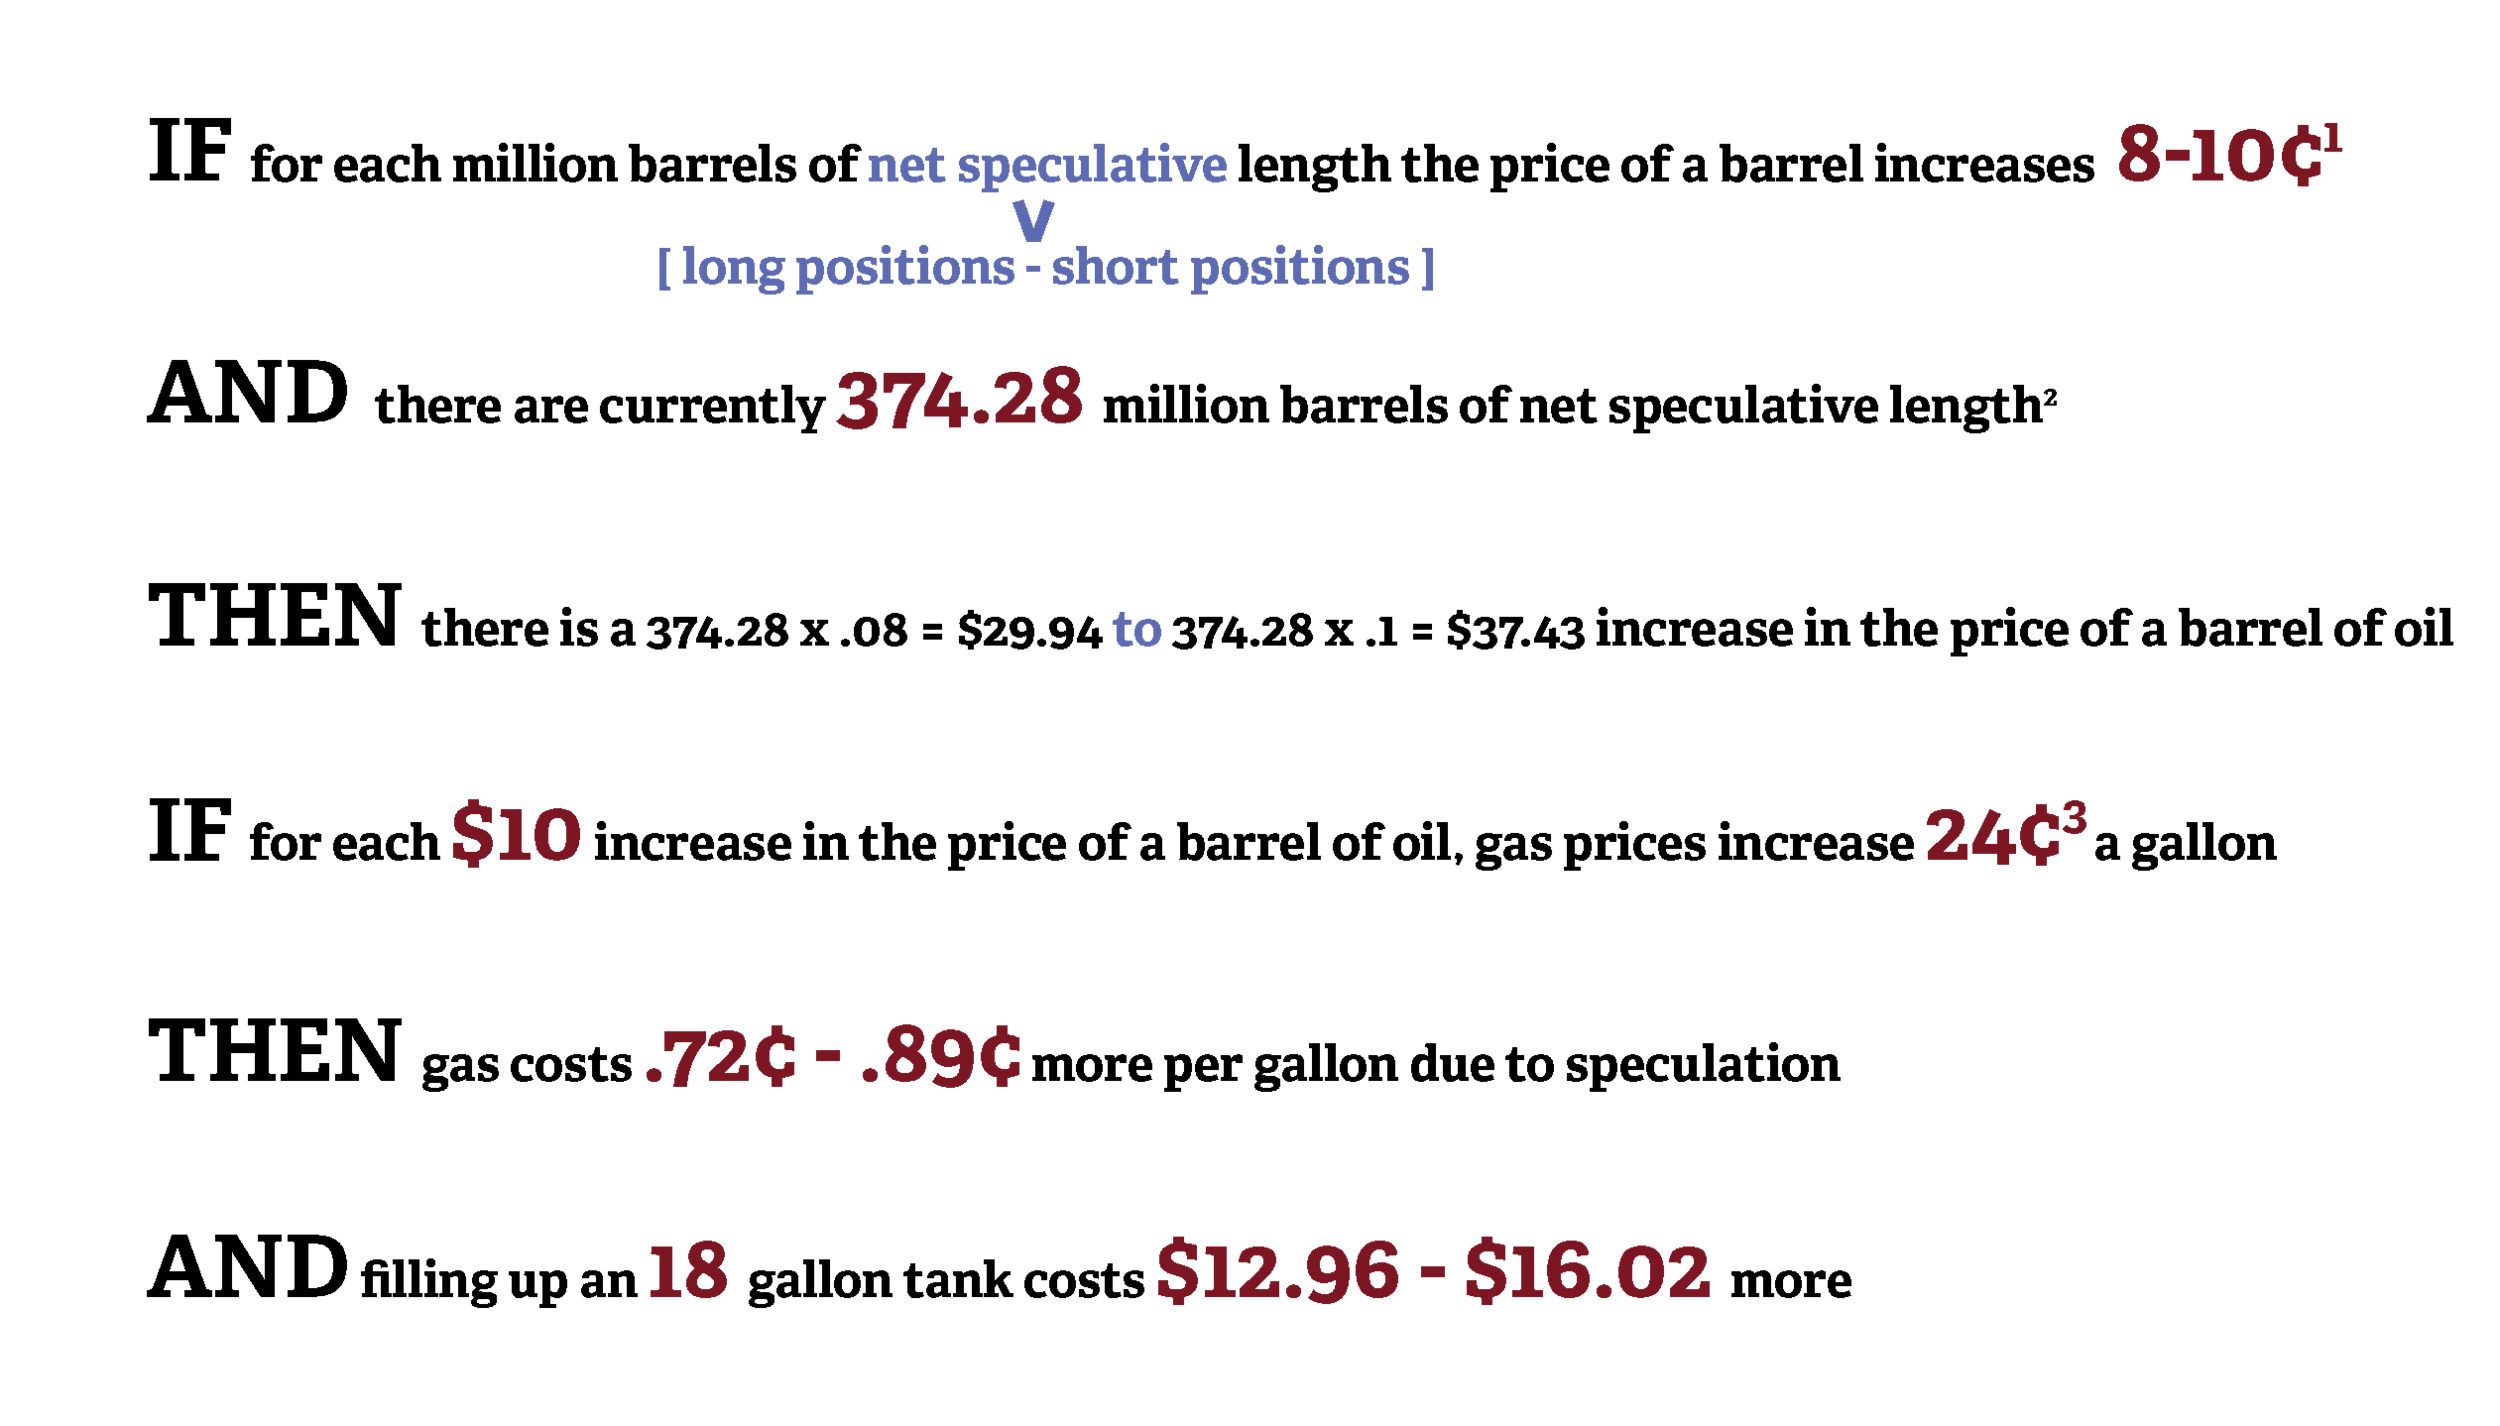 Calculations are an updated version of  these calculations . Net speculative length provides an indicator of the market sentiment for the price increasing or not--if the next speculative length is very high, it indicates that prices are forecast to increase.  1 Figure estimated by Goldman Sachs research group,  read here   2 Figure from CFTC  Commitments of Traders report  as of April 8, 2014. Net speculative length based off managed money positions for WTI futures only, a potentially conservative estimate as it excludes commercial futures, which may be non-speculative  3 Figure from ING research group